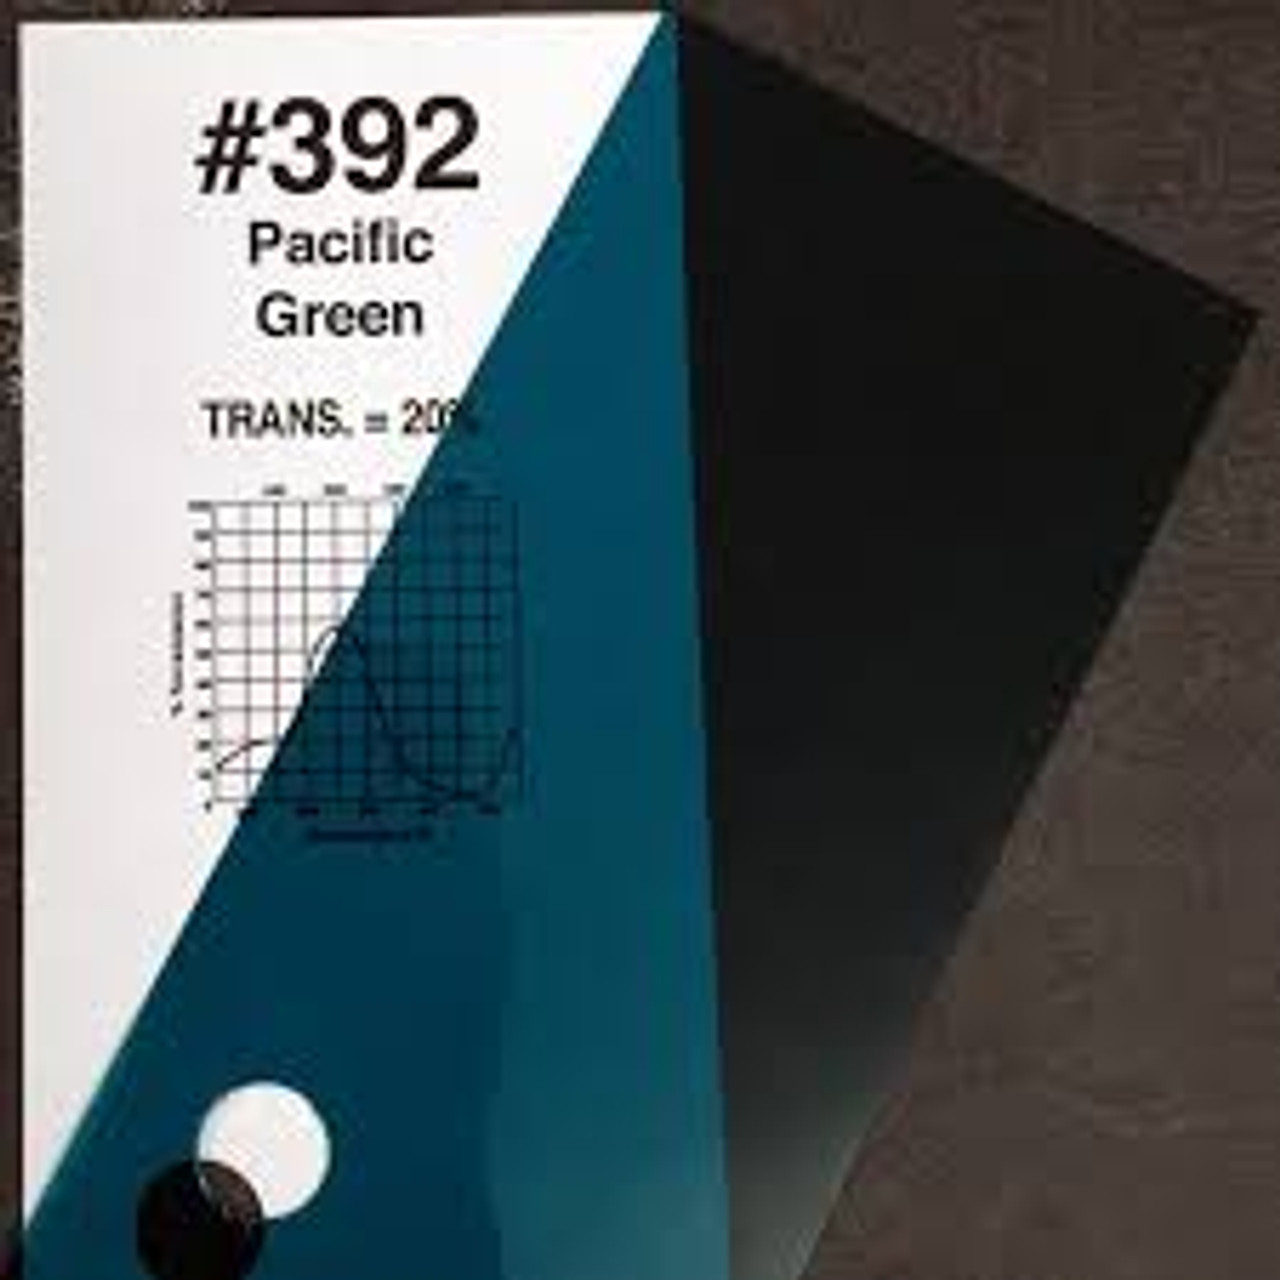 #0392 Rosco Gels Roscolux Pacific Green, 20x24""